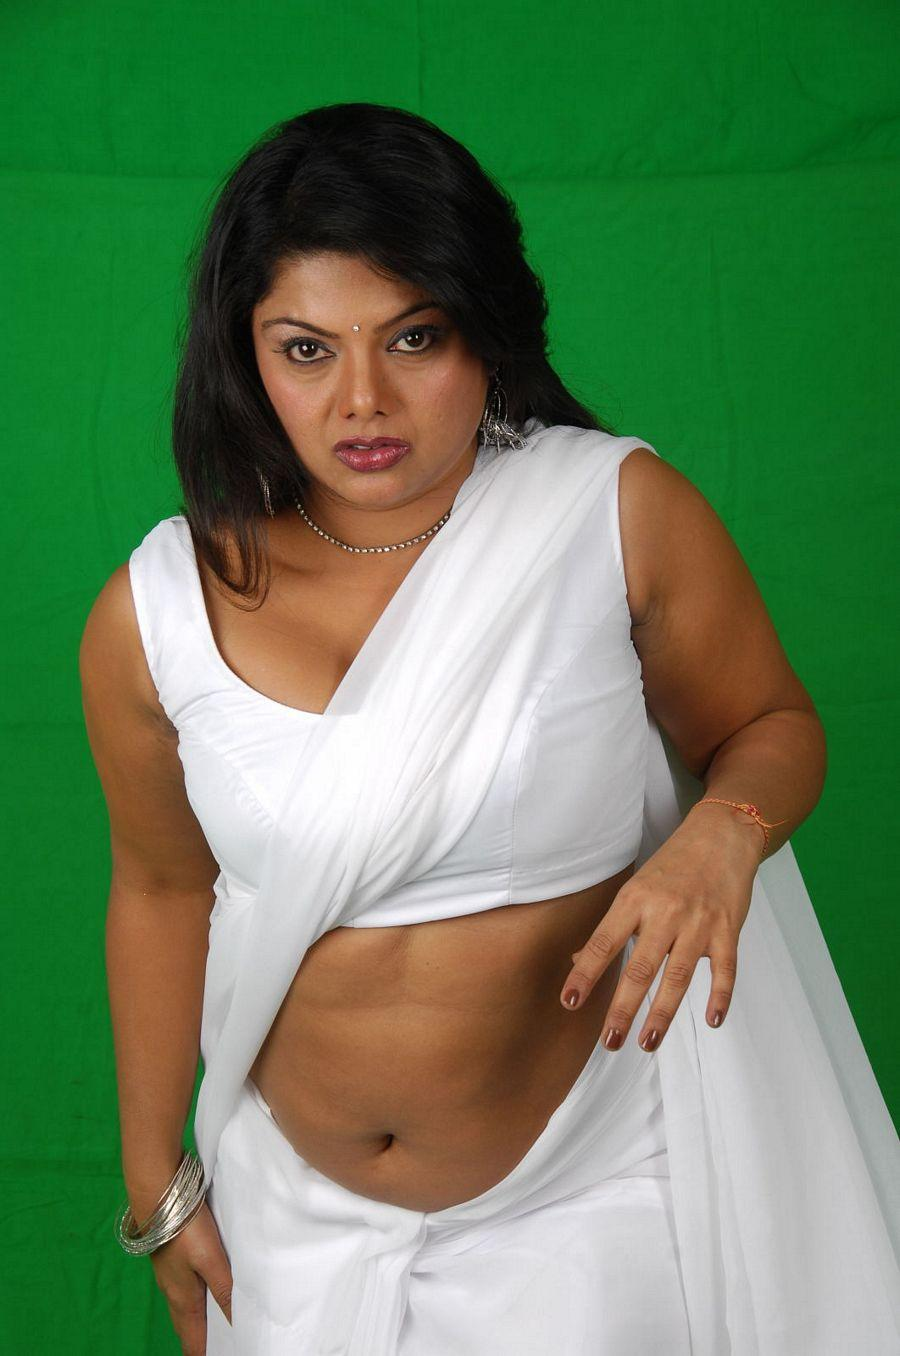 Tamil womens hot images